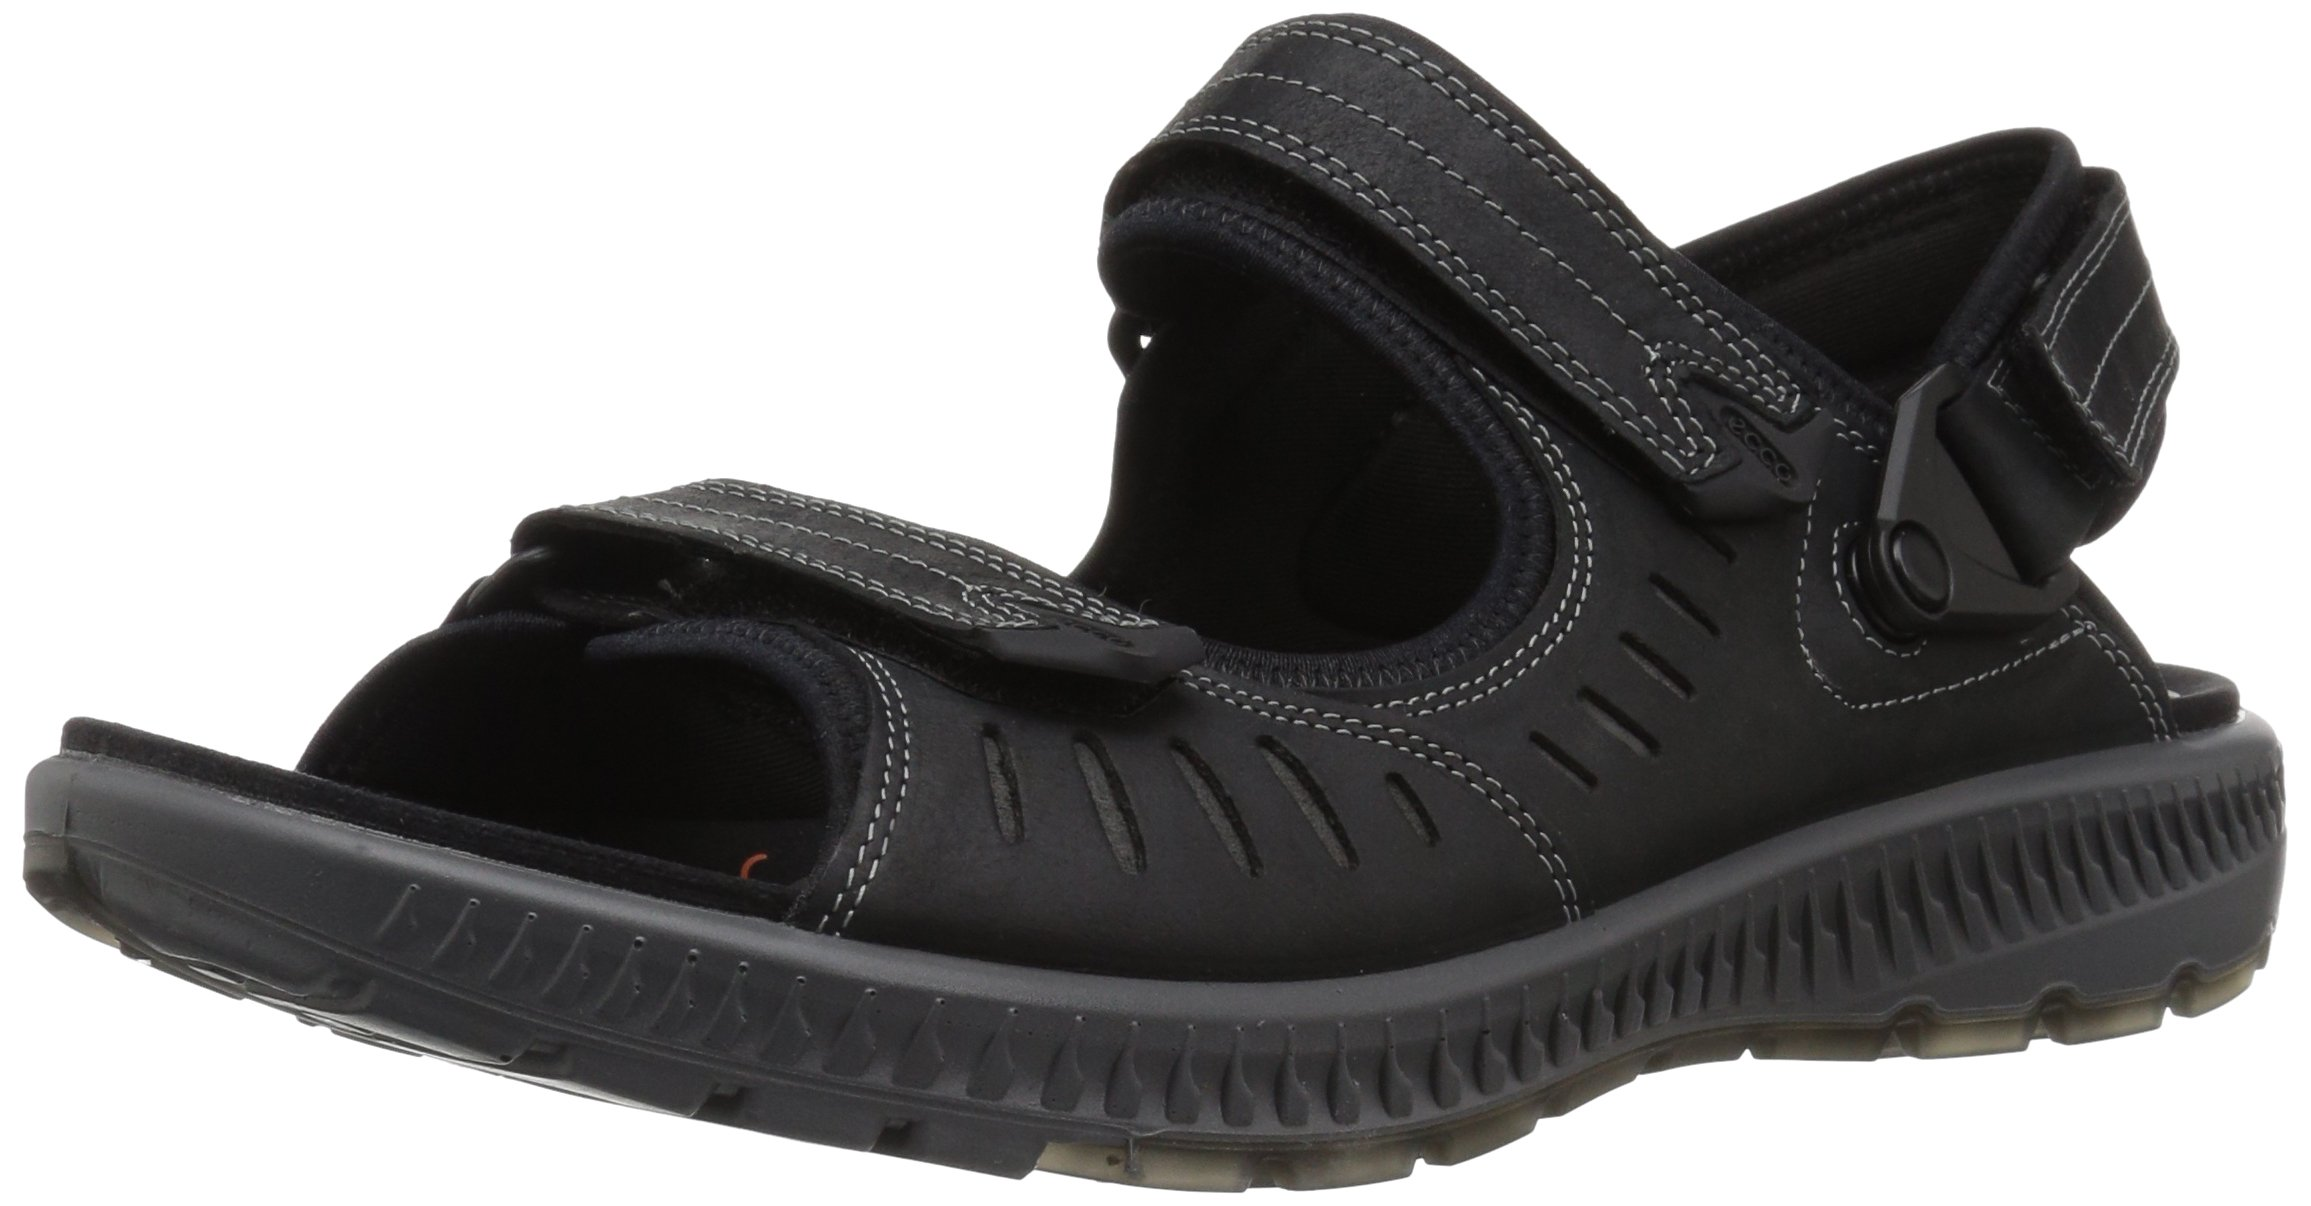 ECCO Men's Terra 2S Athletic Sandal Black 44 EU/10-10.5 M US